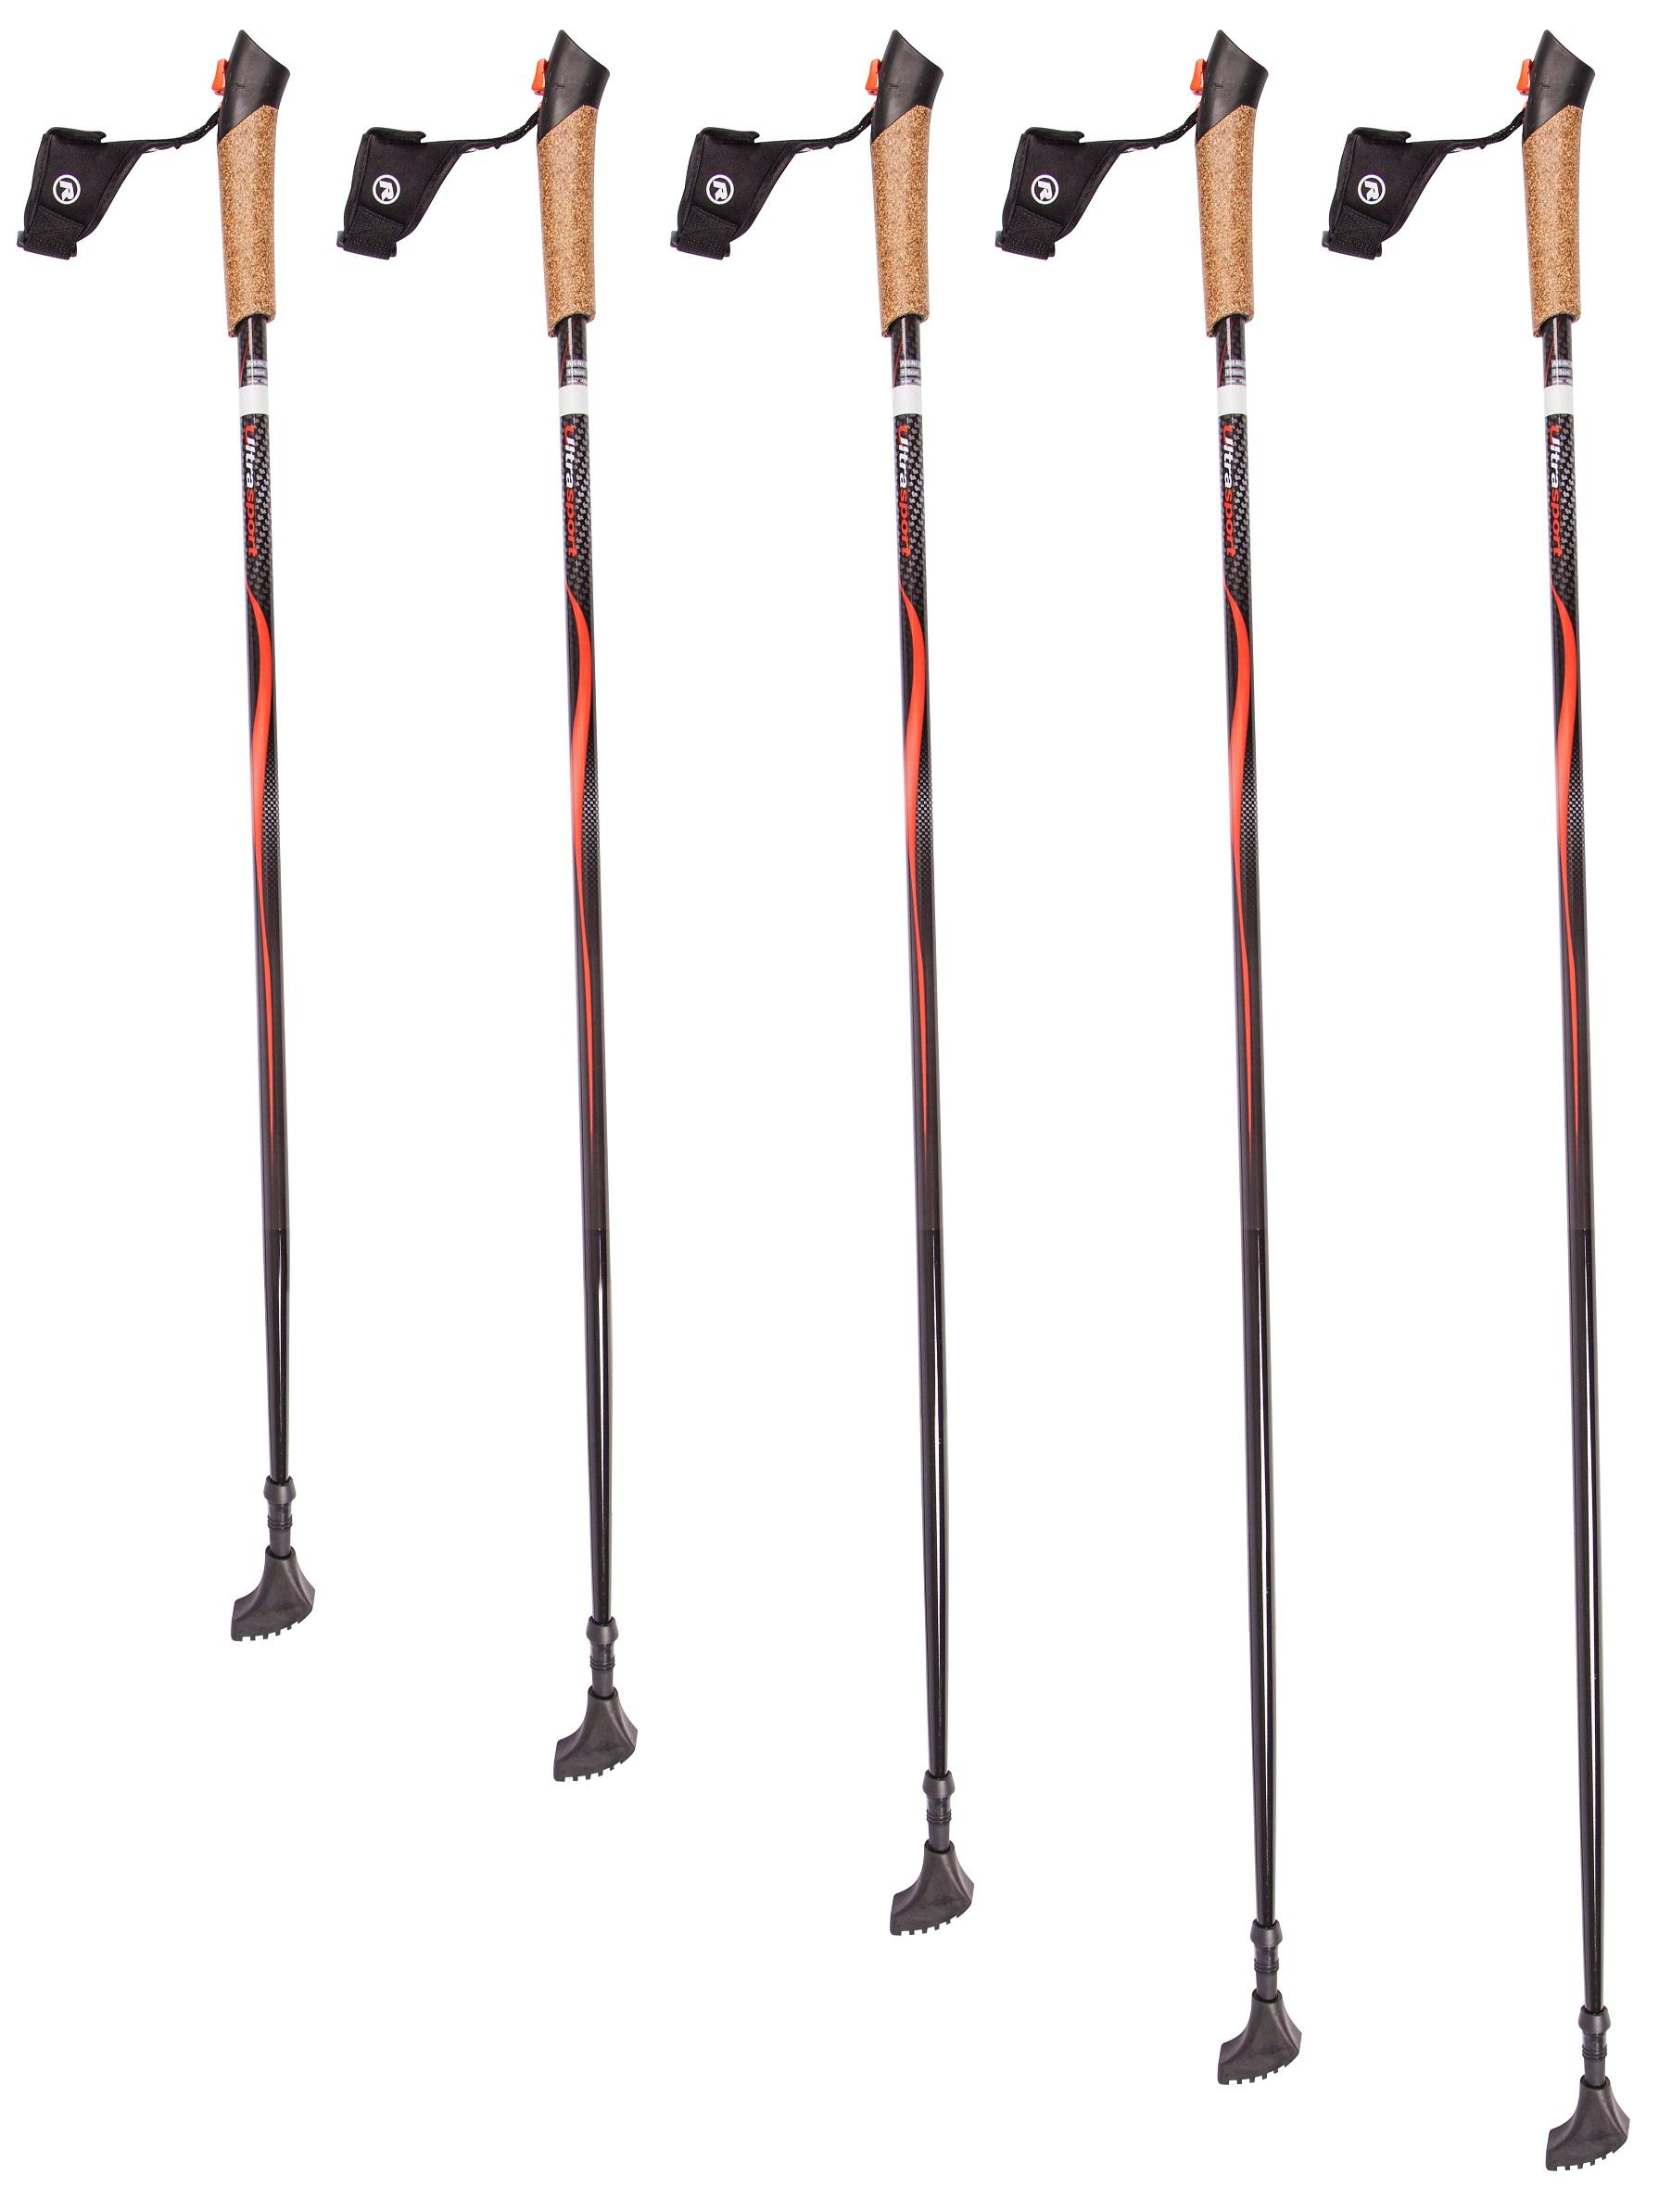 ultrasport carbon nordic walking poles with cork grip and. Black Bedroom Furniture Sets. Home Design Ideas